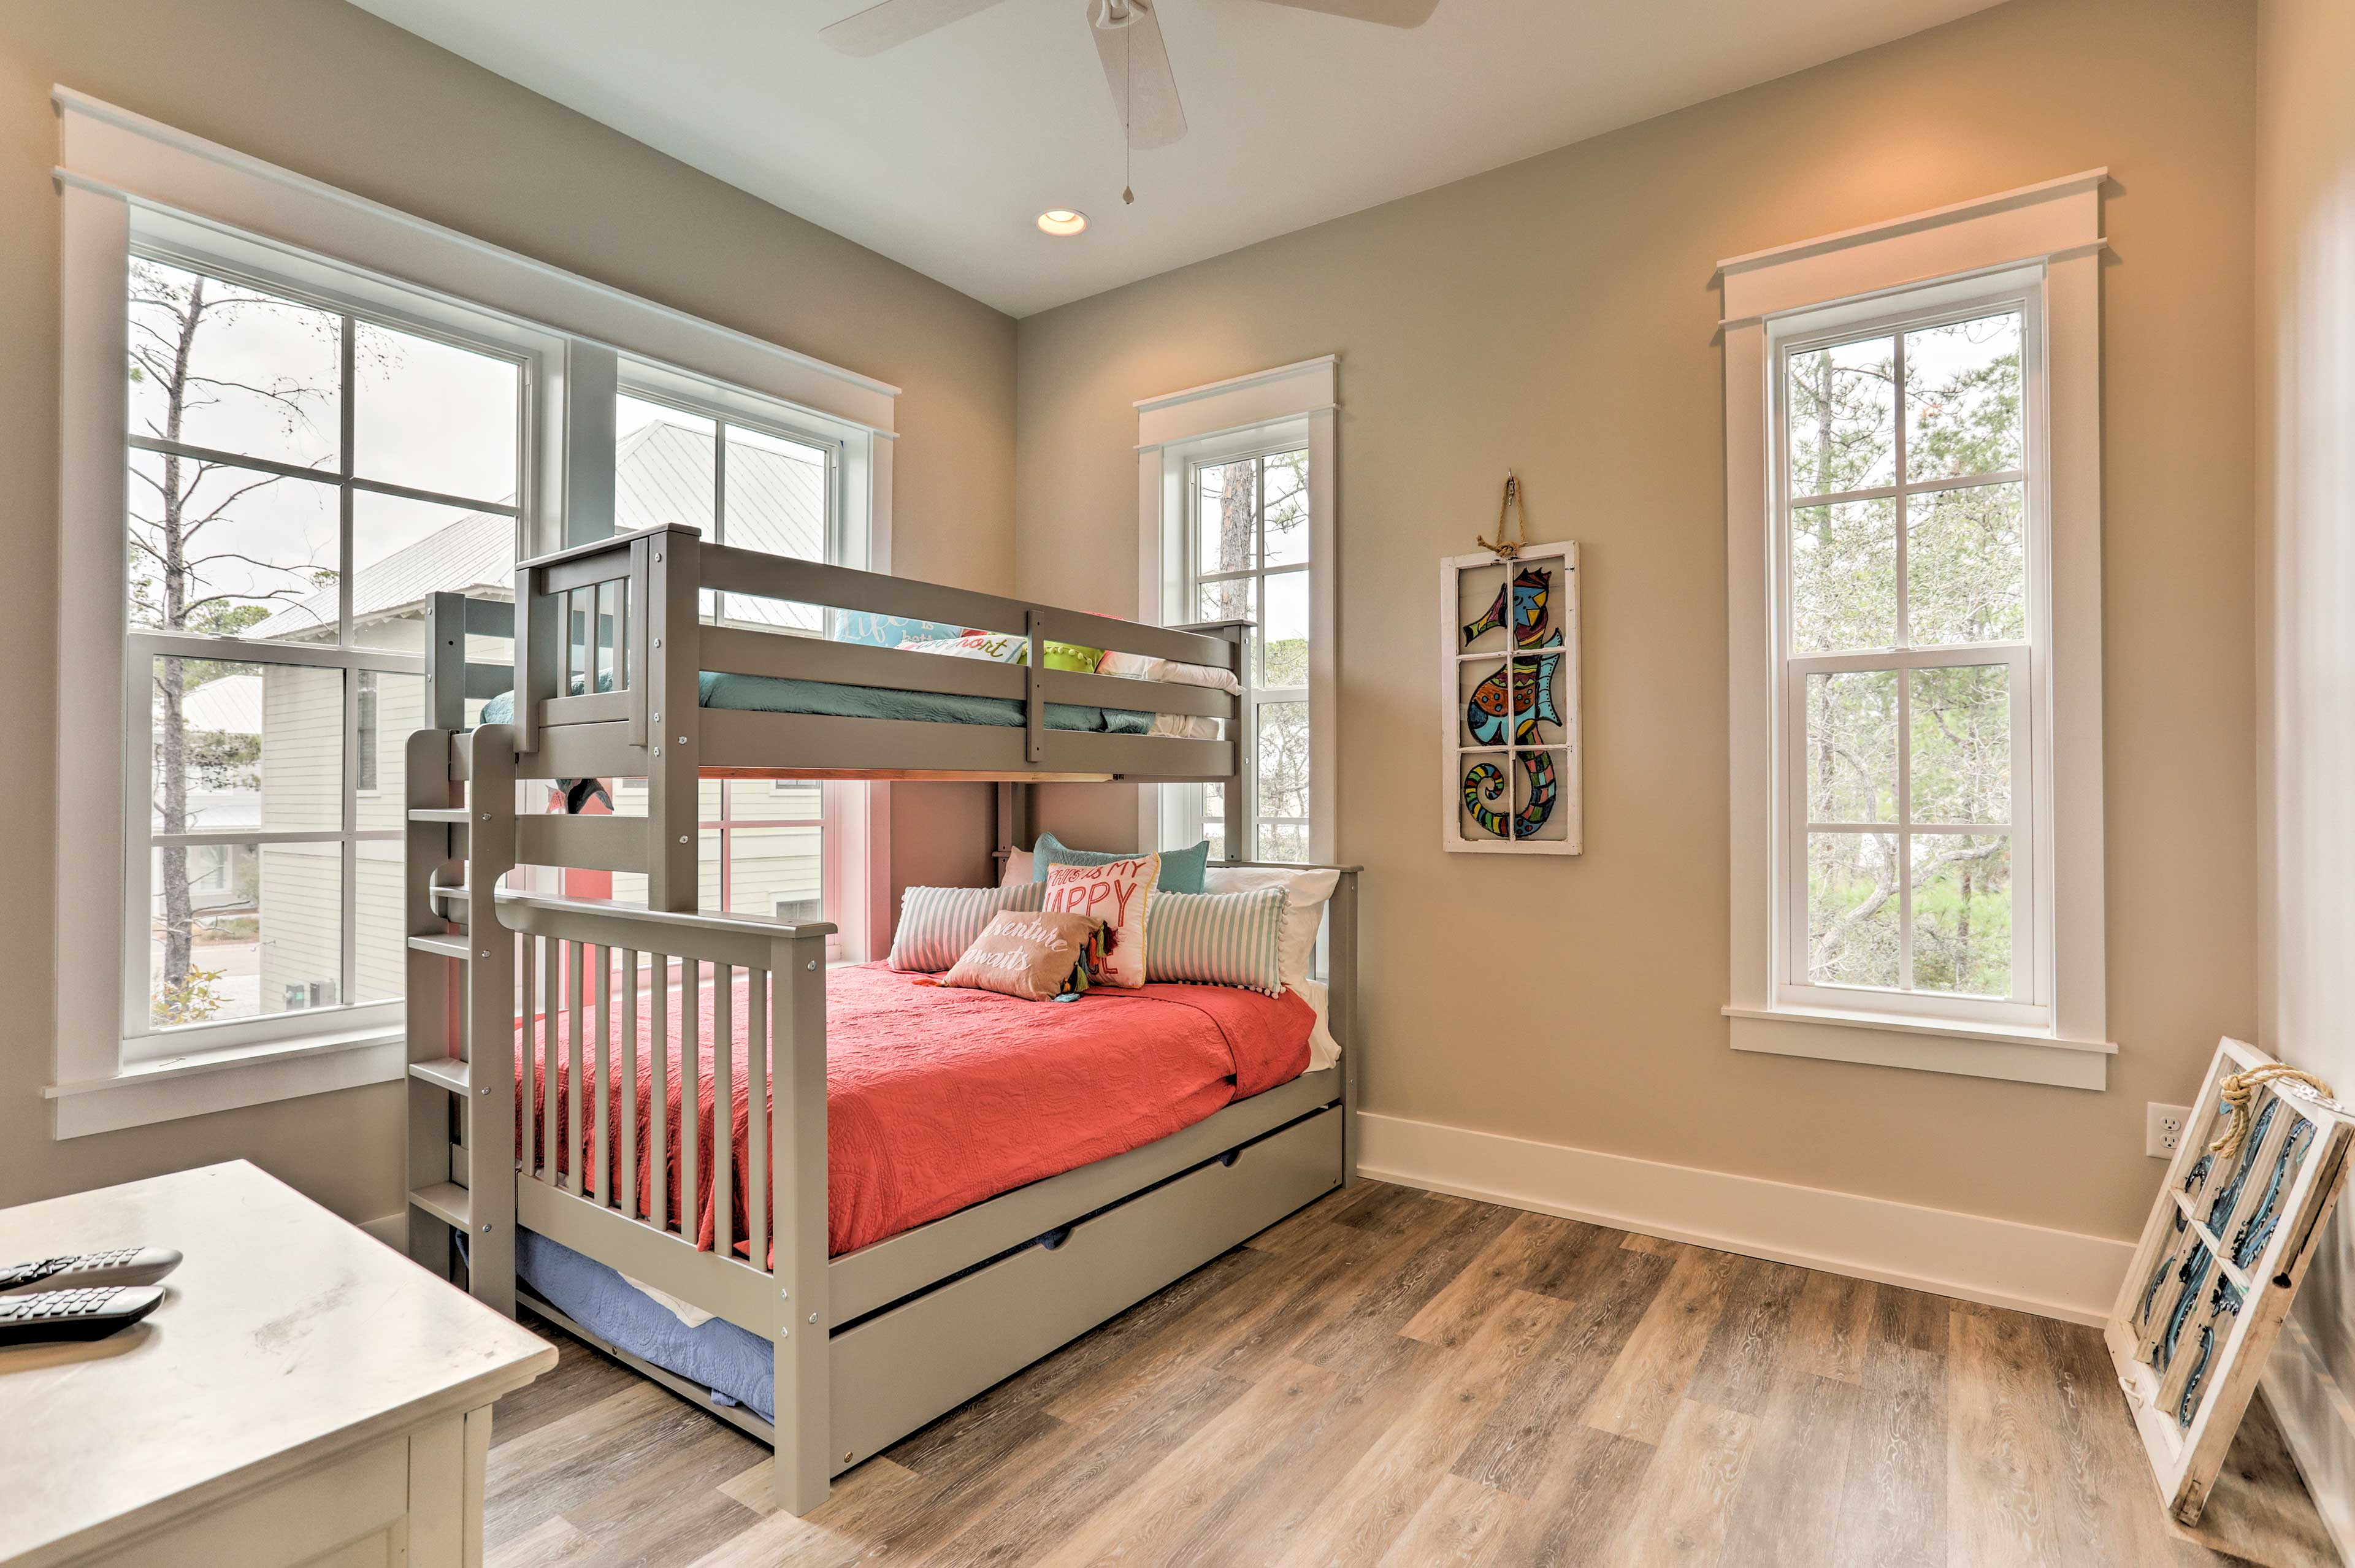 Kids will love this room with a twin-over-full bunk bed and twin trundle.